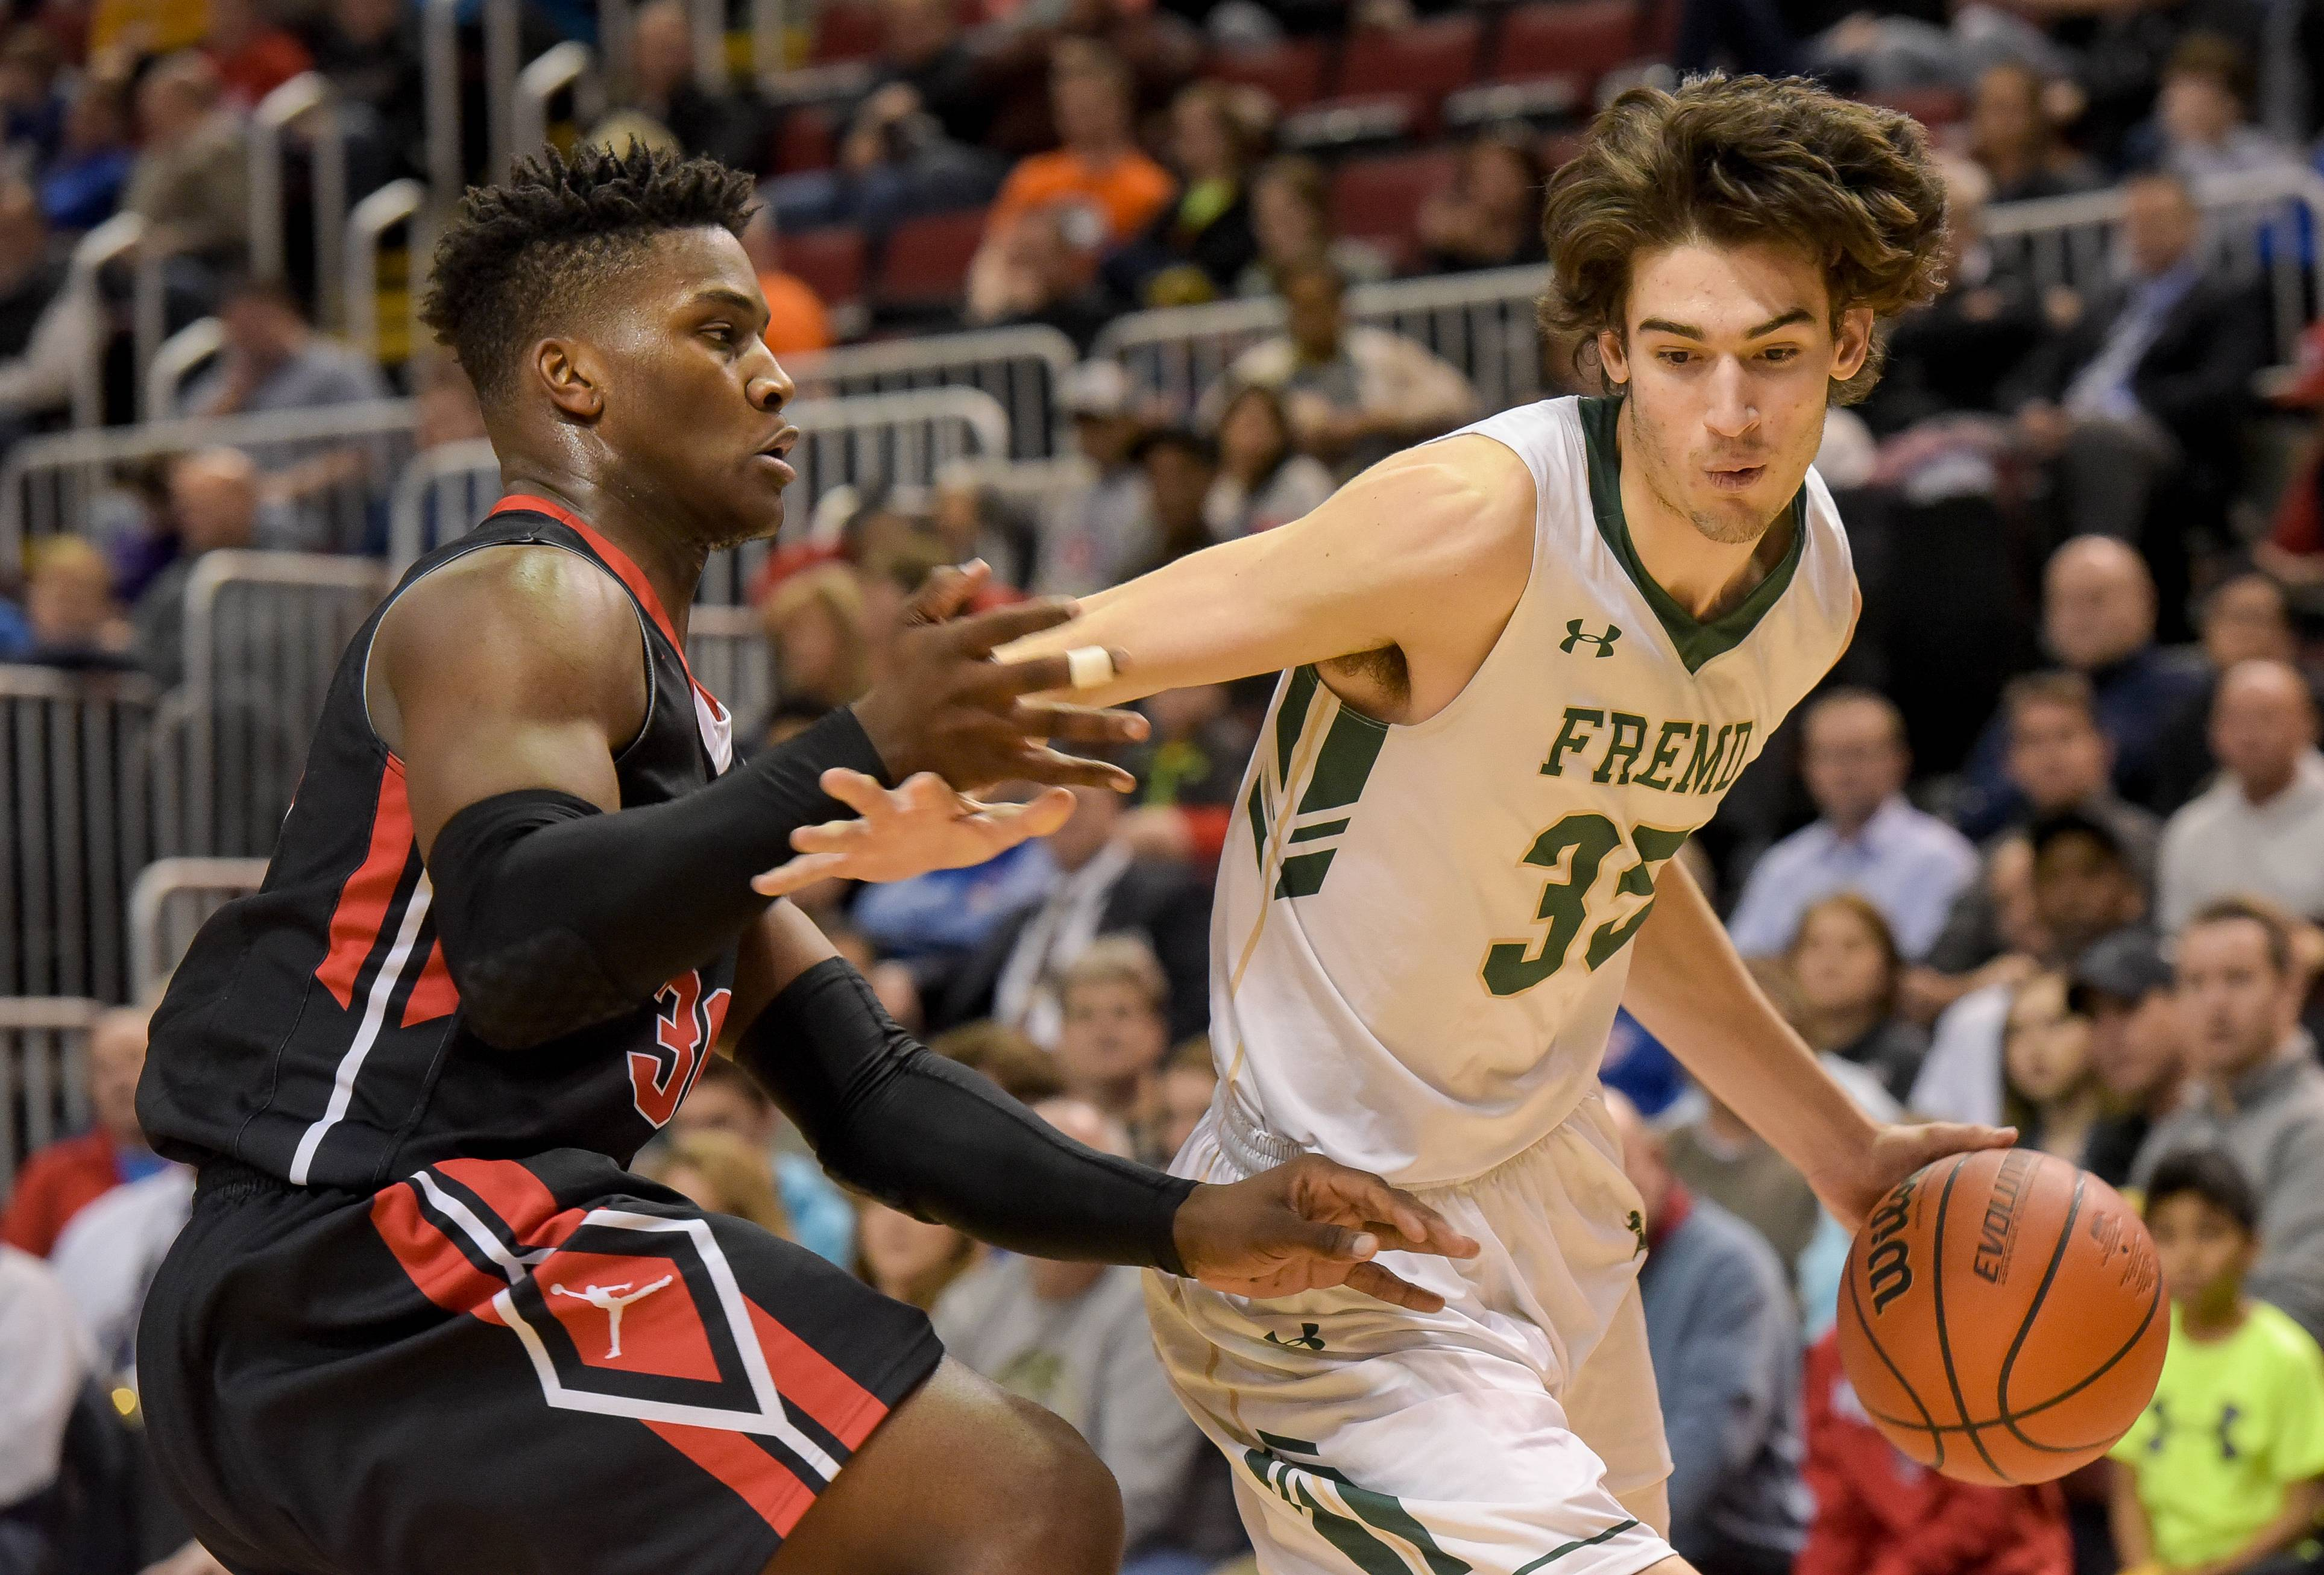 Fremd's Brian Dompke pushes around Bolingbrook's Malik Binns in the Class 4A third-place game Saturday in Peoria.